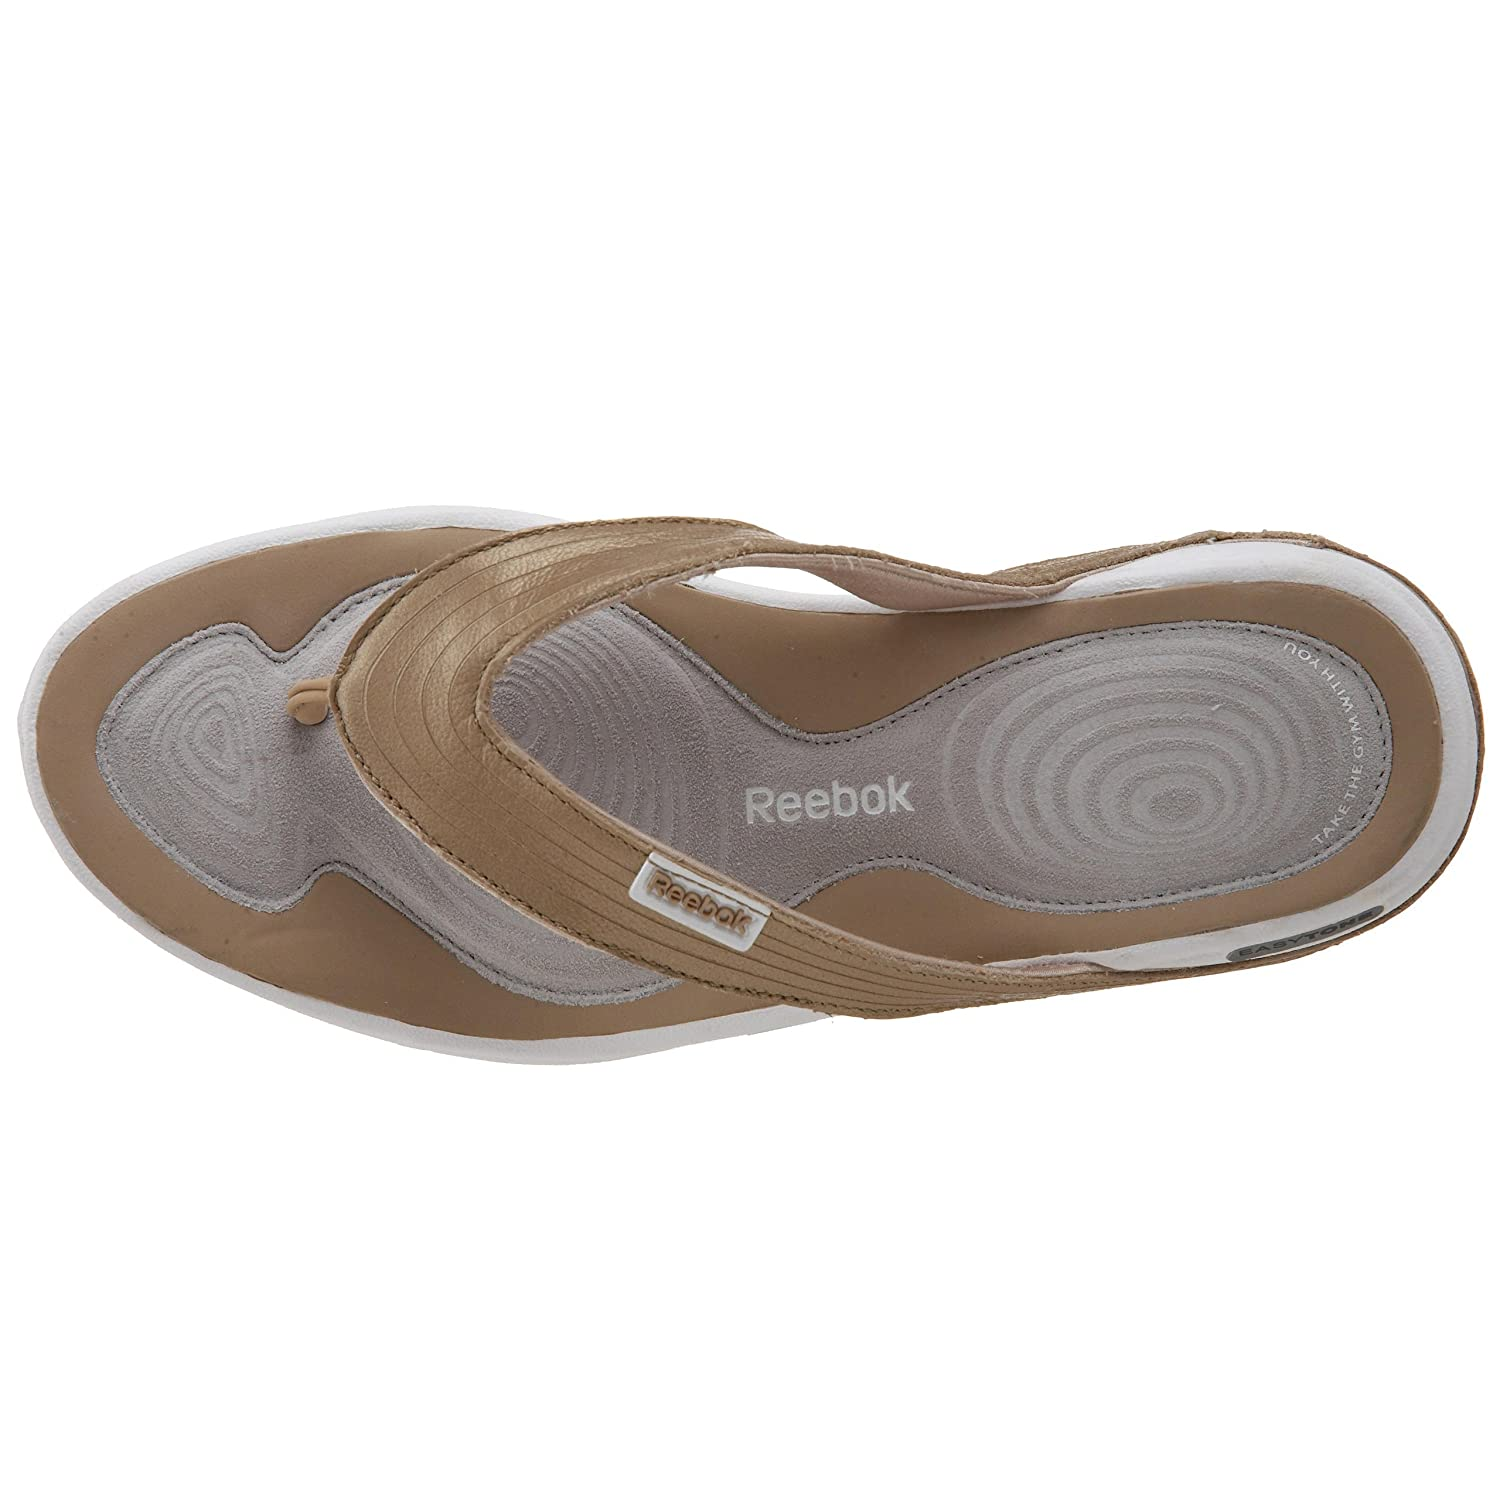 ad6d38fb0 Womens Reebok 2-J05965 Easytone Flip-flops Slipper Shoe Brand New Fast  Postage  Amazon.co.uk  Shoes   Bags